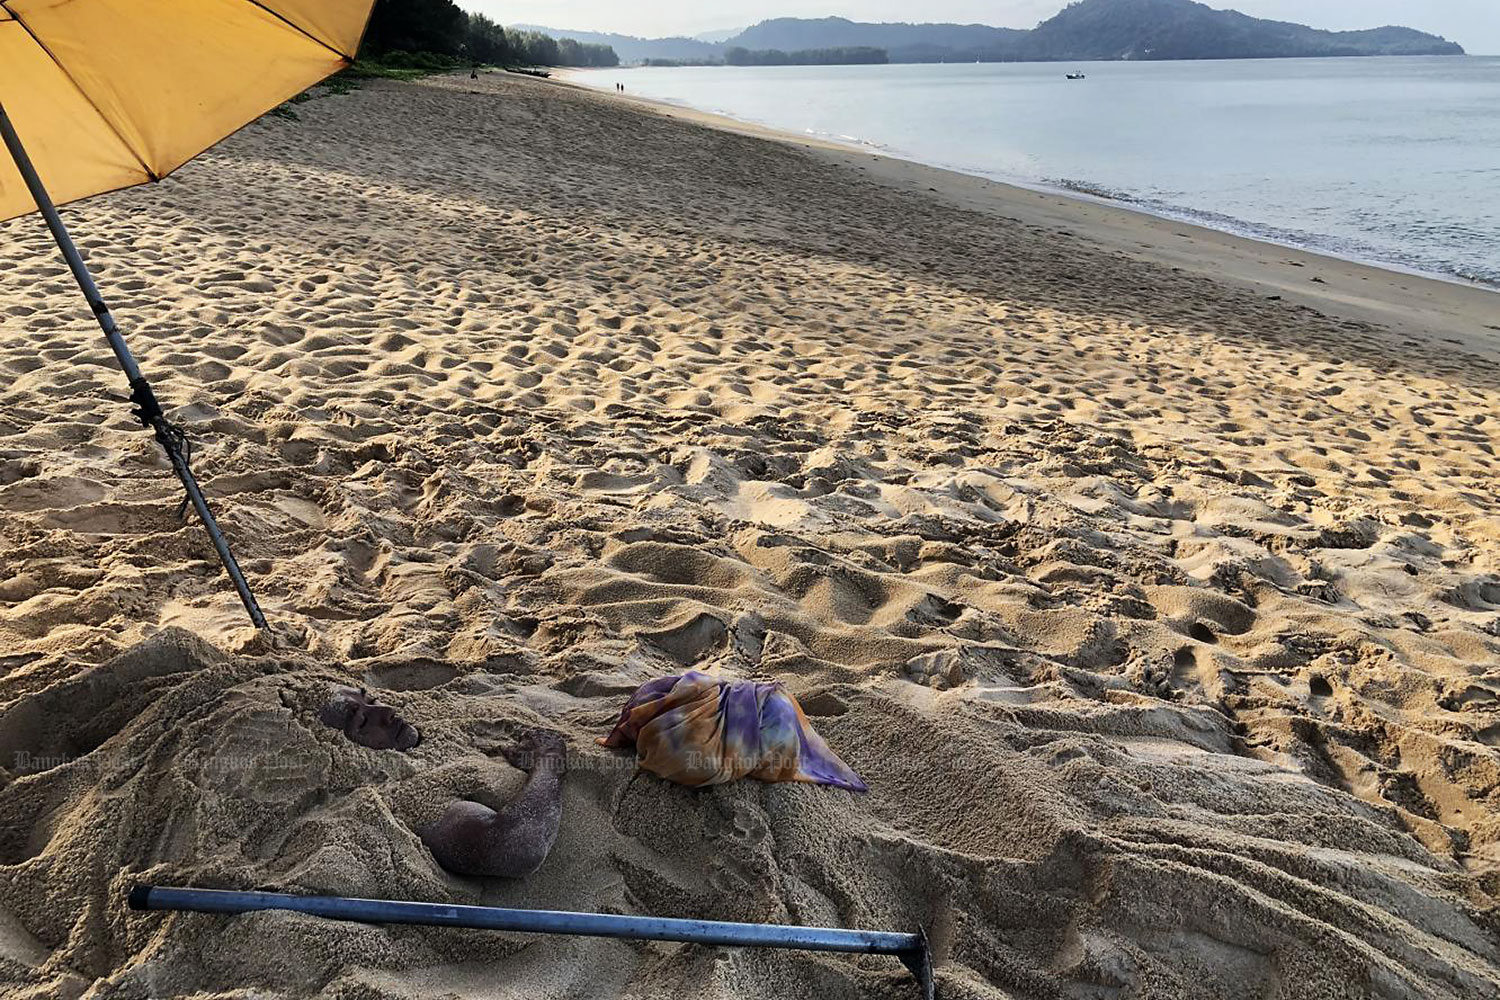 A man is buried in the sand on Hat Mai Khao Beach in Phuket as he believes it can help cure his paralysed limbs. (Sarot Meksophawannakul)